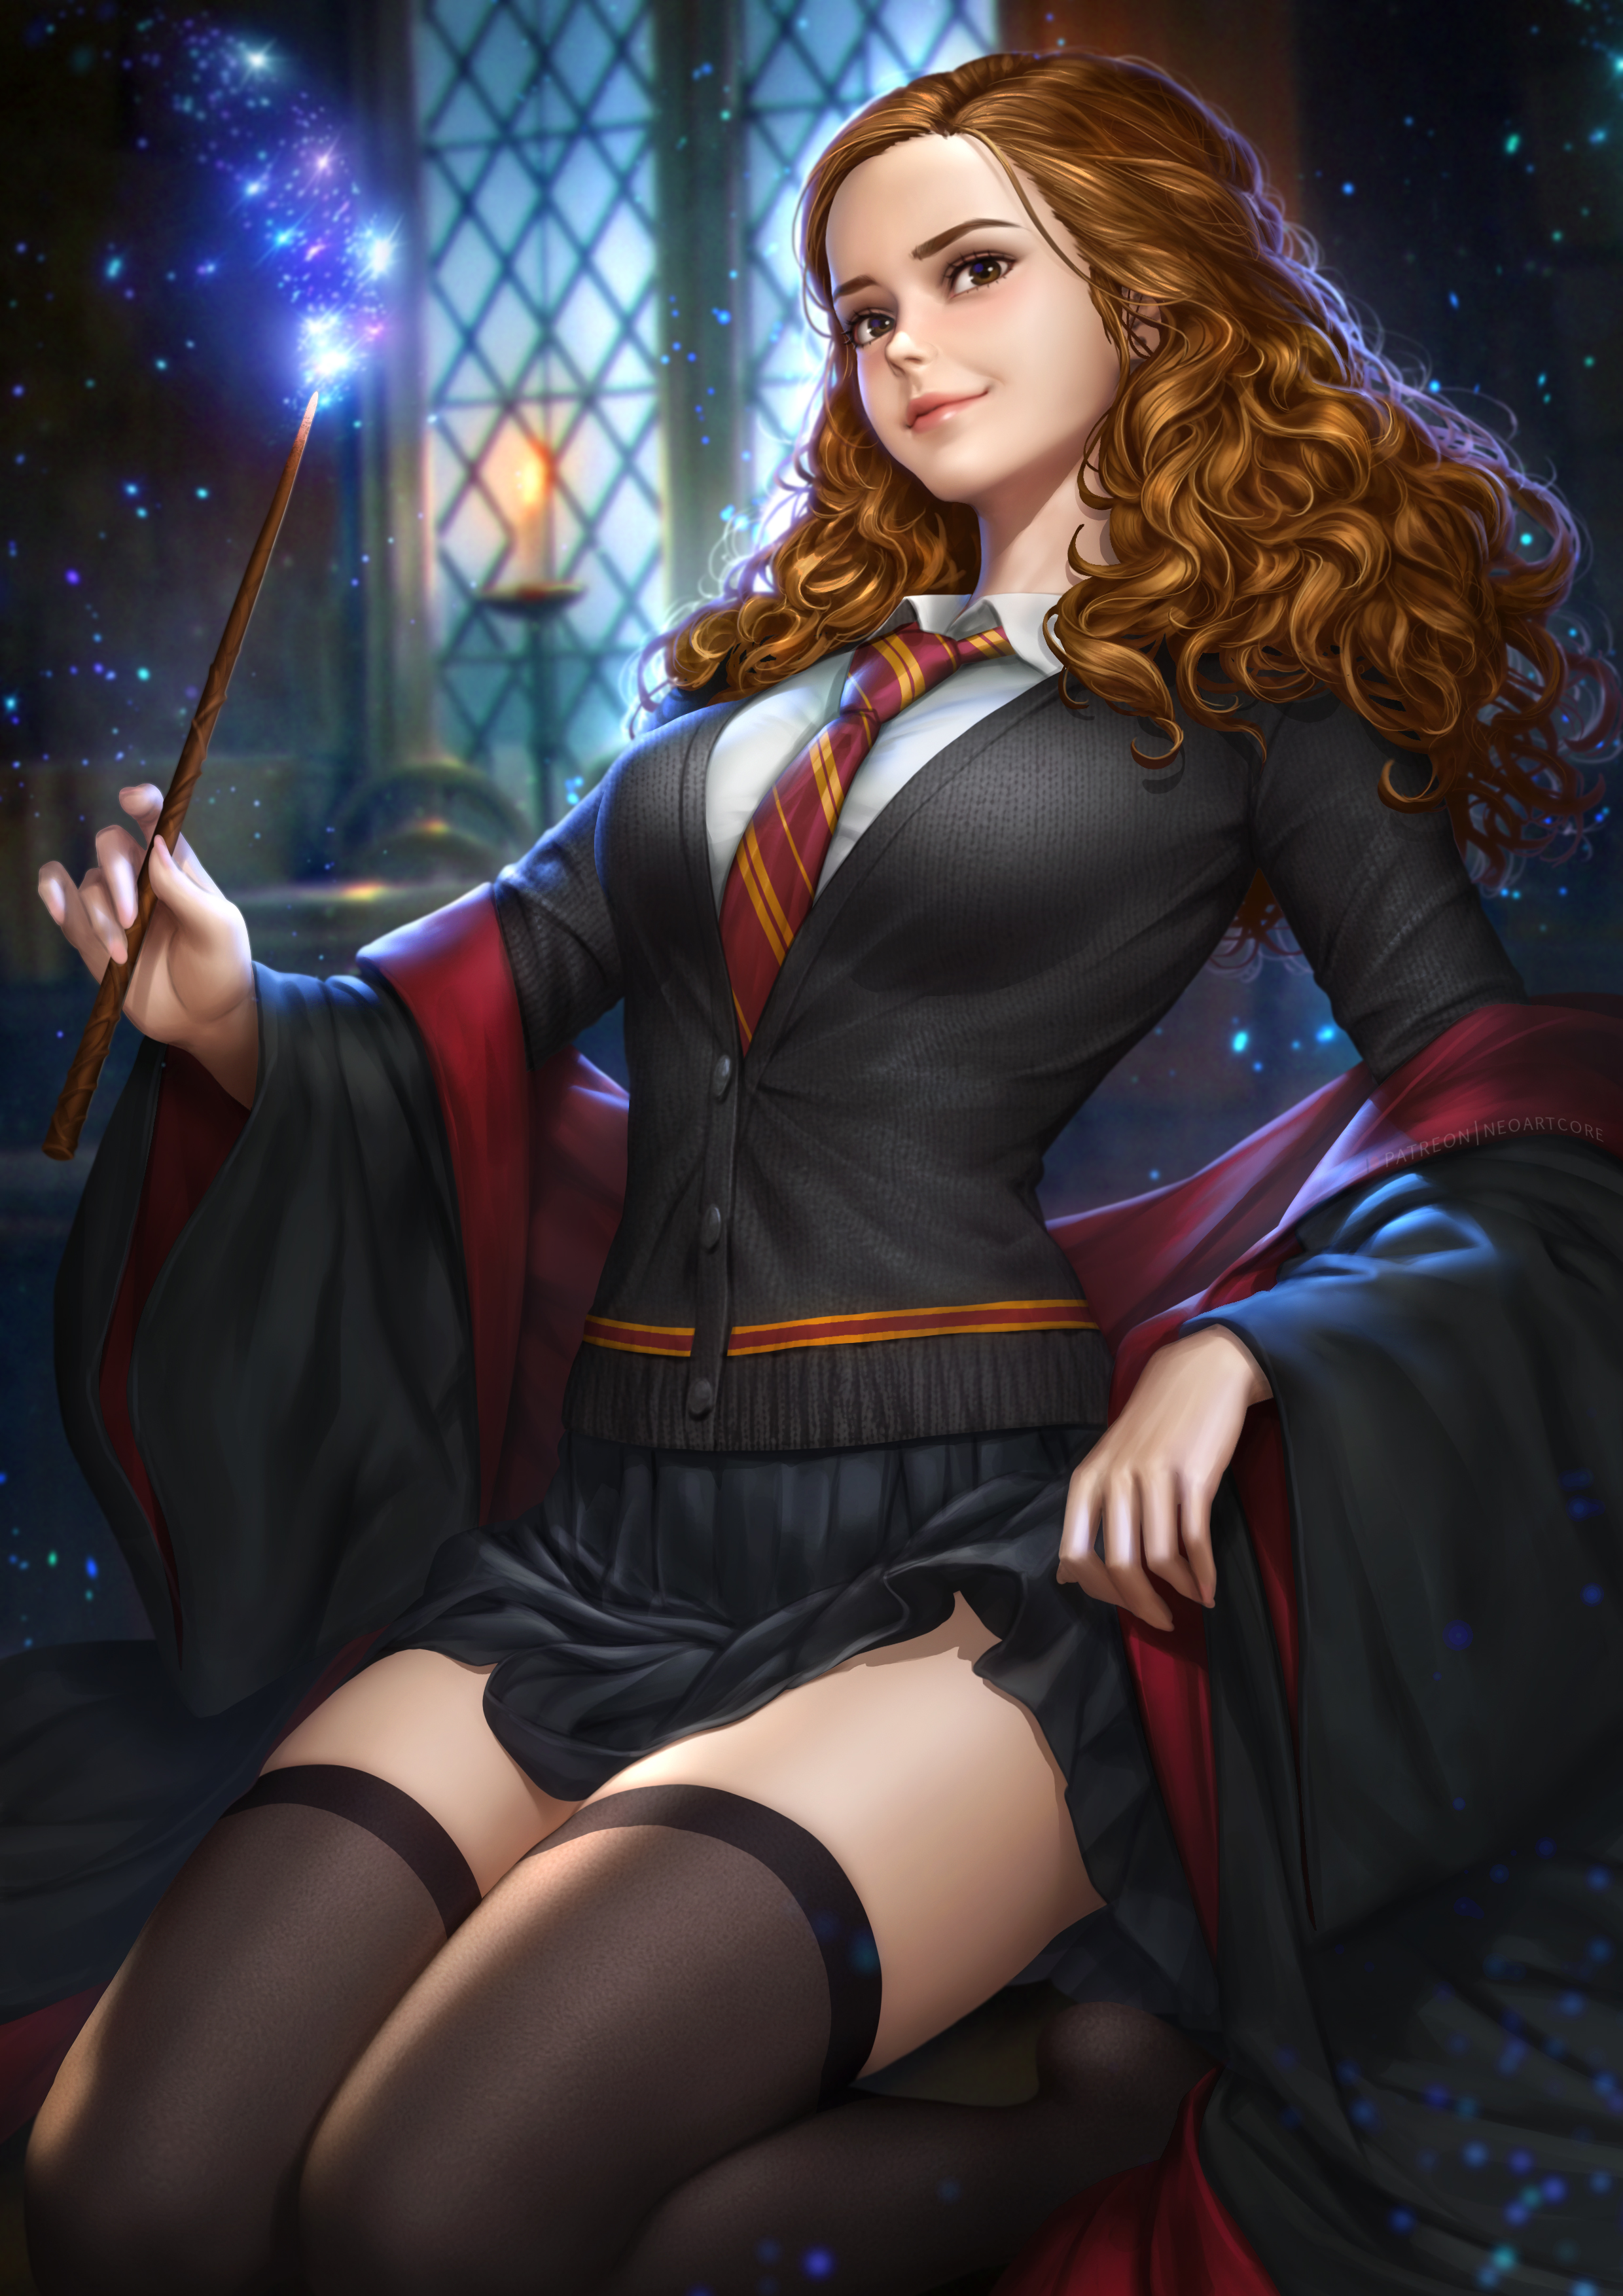 General 2480x3508 Hermione Granger Harry Potter Harry Potter and the Goblet of Fire movies fantasy girl women wizard brunette wavy hair long hair brown eyes looking at viewer smiling cape sweater tie skirt stockings black stockings thigh-highs kneeling school uniform schoolgirl Gryffindor wands magic spark glowing depth of field Hogwarts portrait display vertical artwork drawing digital art illustration fan art NeoArtCorE (artist) black clothing